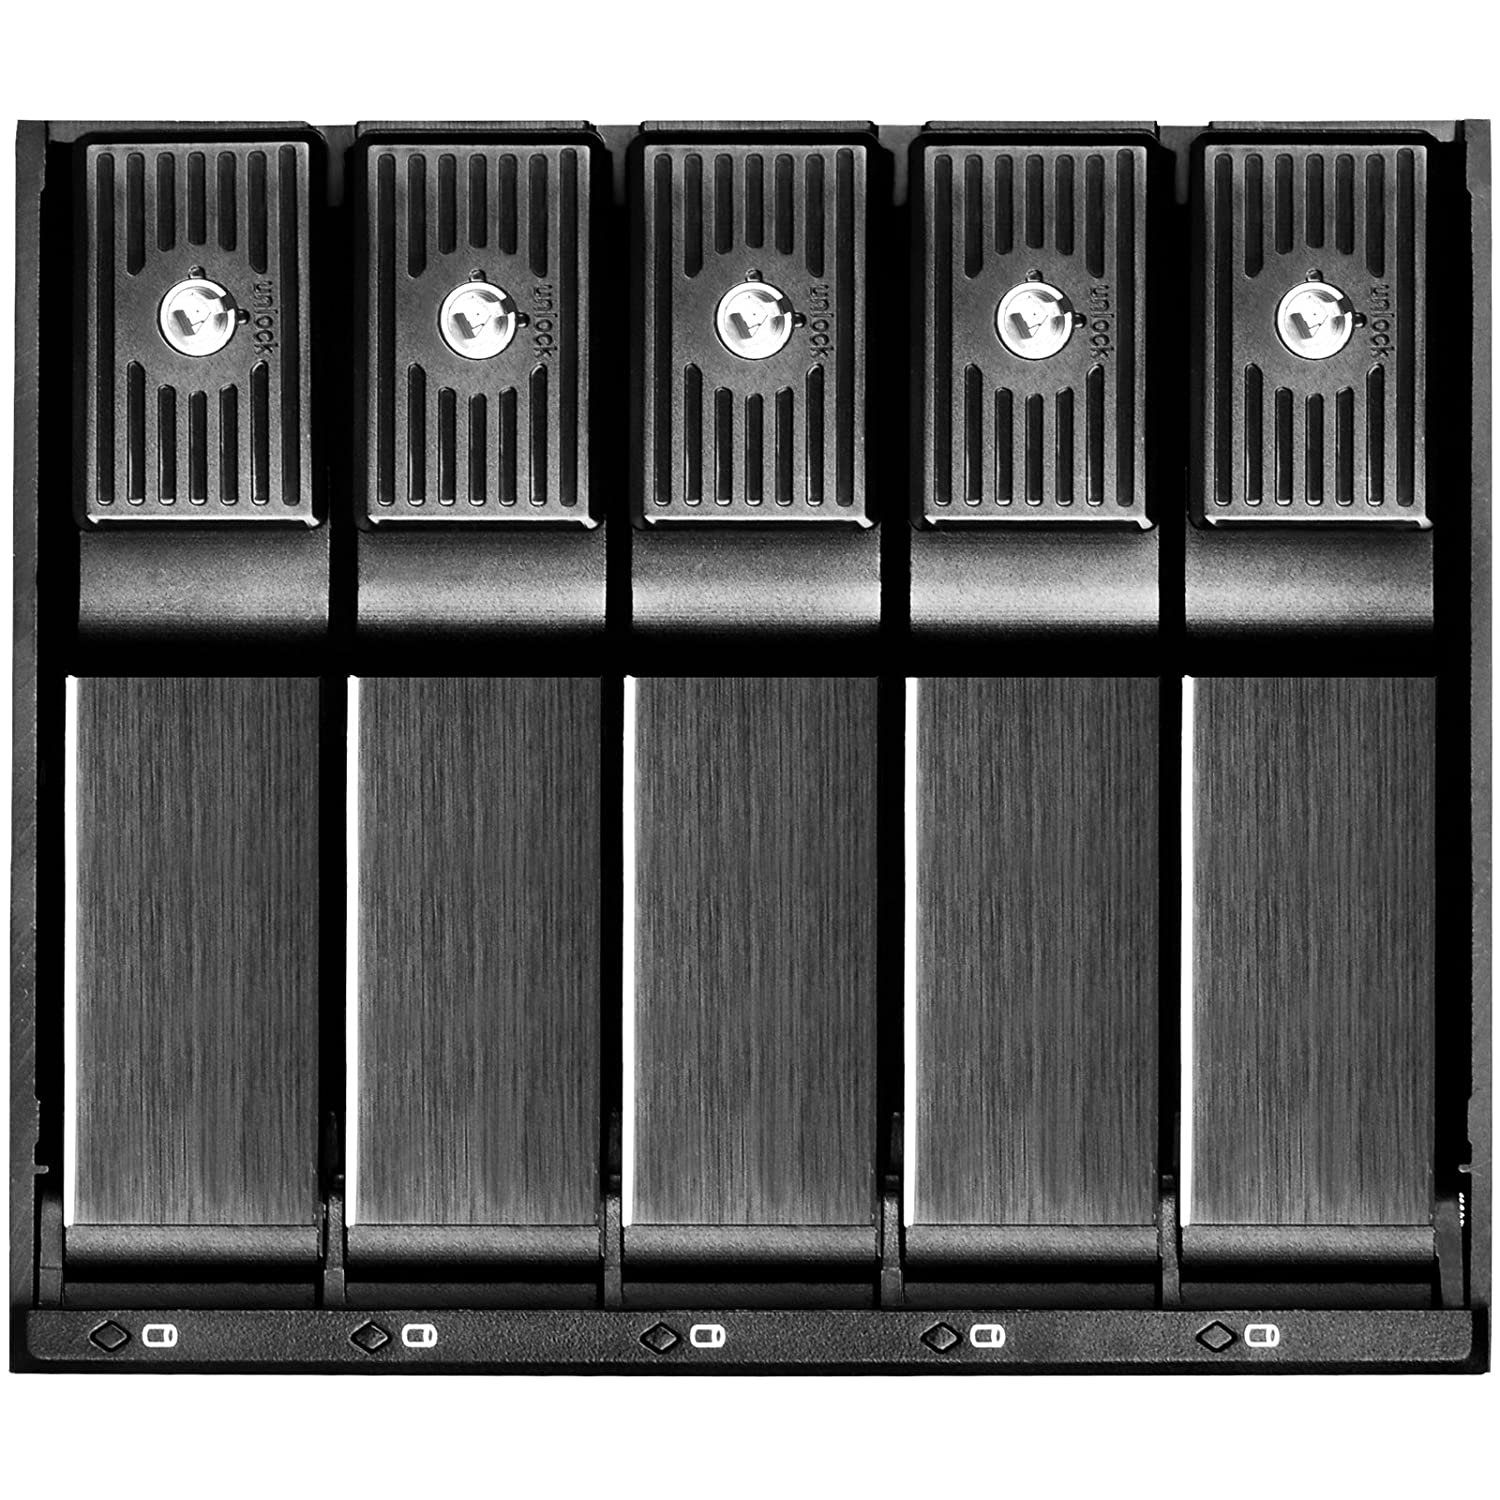 SilverStone SST-FS305B black 5 Bay Aluminium Trayless Hot Swap Mobile Rack Backplane with Fan and Lock for SAS//SATA HDD